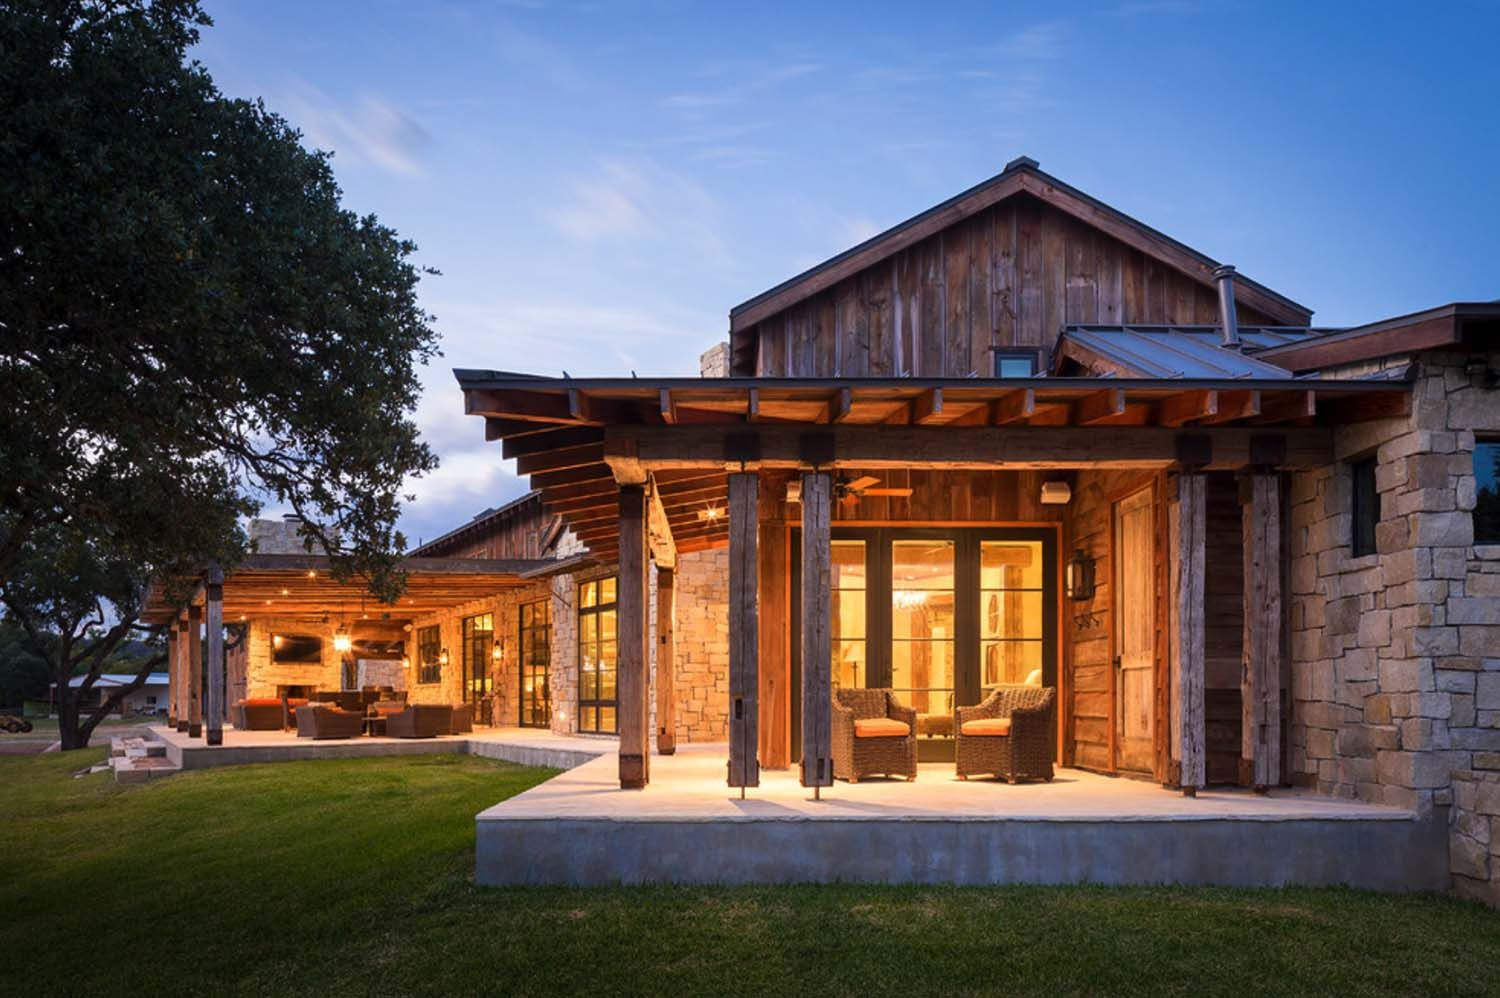 Modern rustic barn style retreat in texas hill country Texas hill country house designs